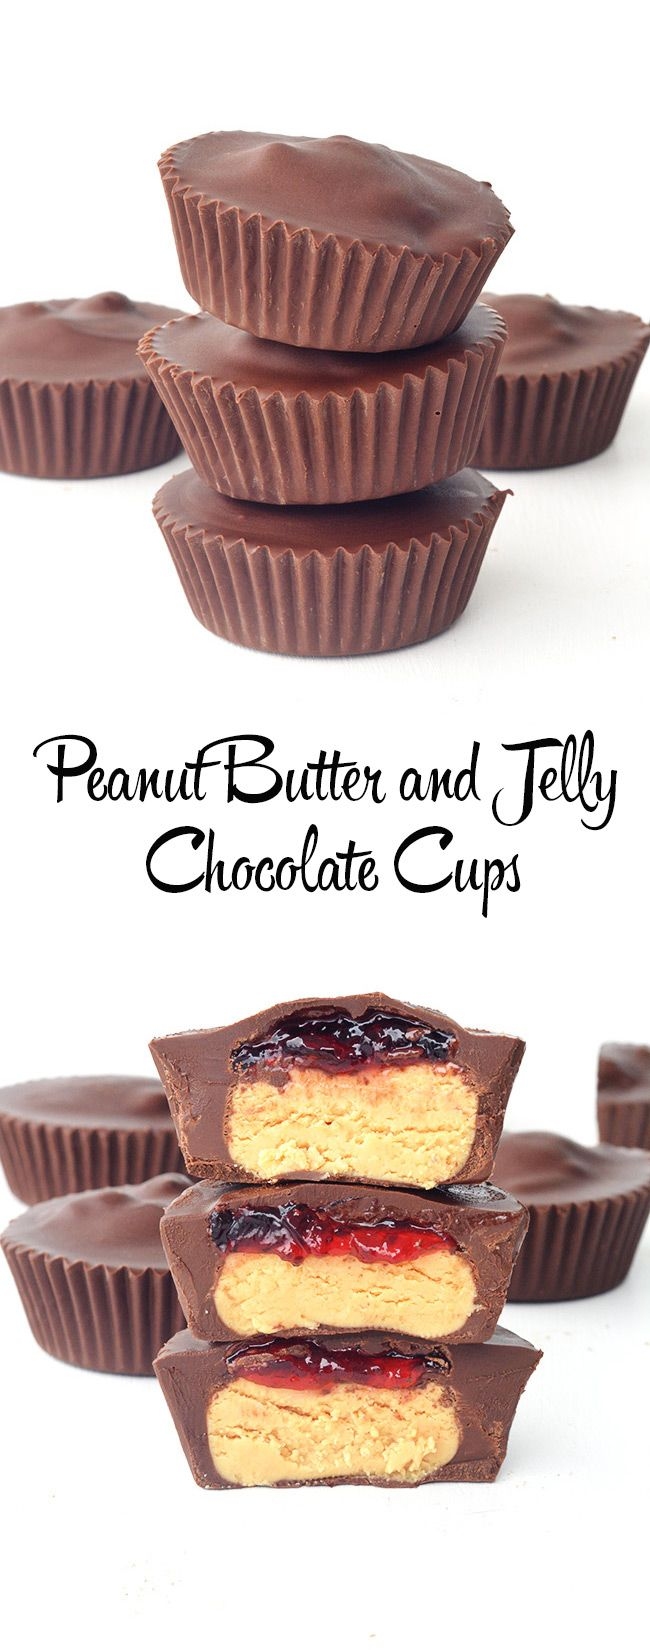 Peanut Butter and Jelly Chocolate Cups - Sweetest Menu